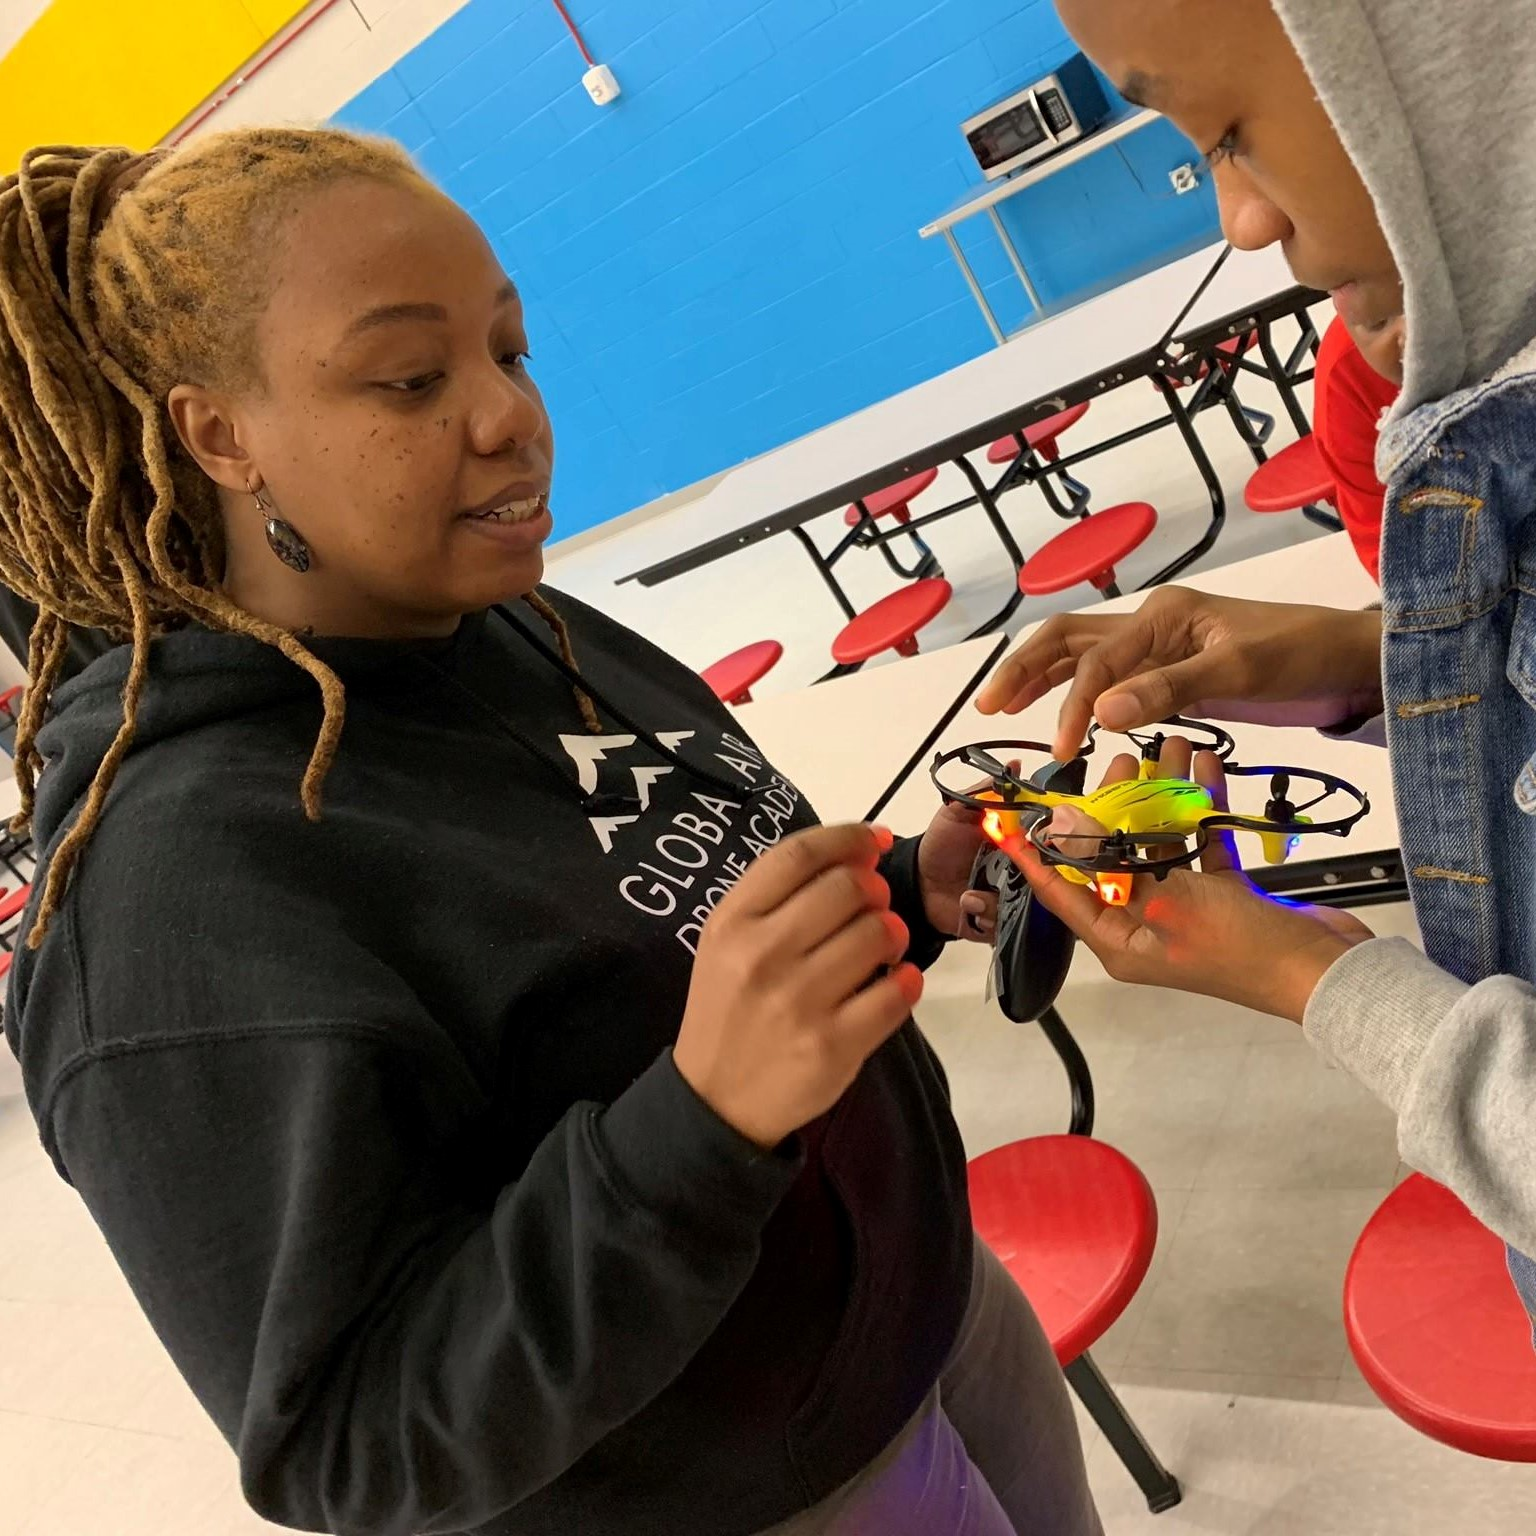 Intermediate Flight School - Grades: 5 - 10Length: 8 Weeks, meets once a weekActivities: Group drone building, flight skills and intermediate drone coding. EVERY STUDENT TAKES HOME A DRONE!Price: $295 per student